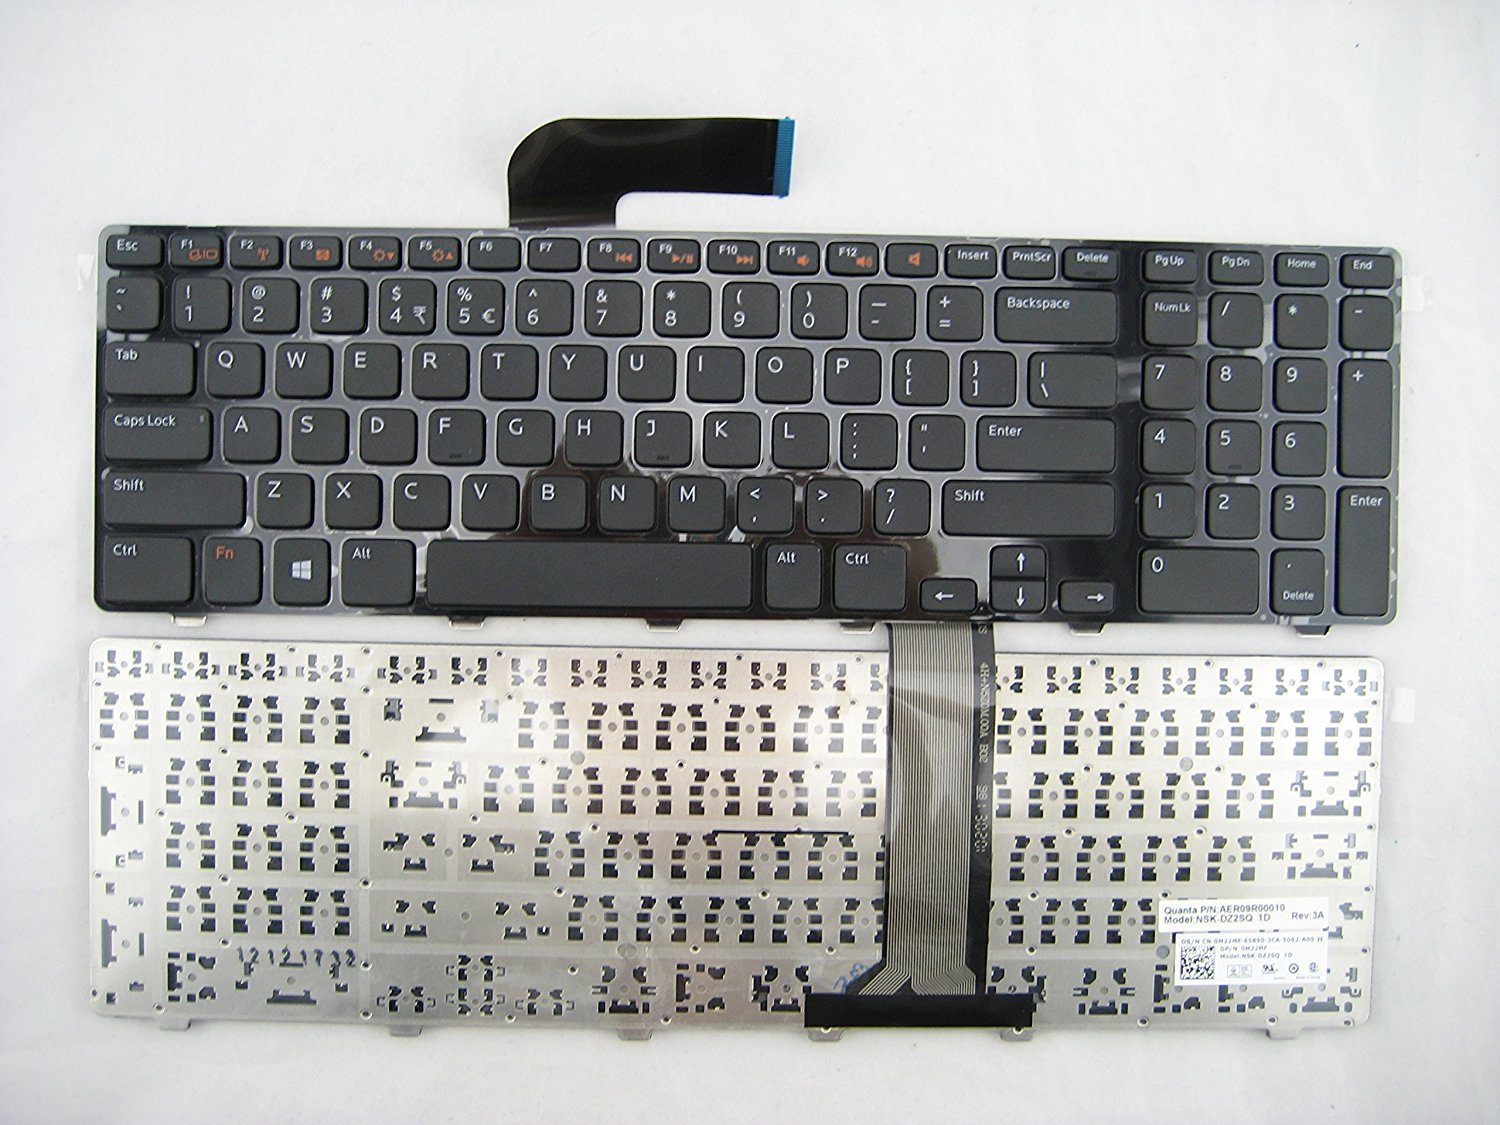 LotFancy Laptop replacement keyboard for Dell Inspiron 17 17R N7110 Vostro 3750 XPS 17 L702X 454RX 0454RX 5720 7720 fit part number: 454RX 8XN0P 9GTY3 09GTY3 O9GTY3 O8XN0P 08XN0P AEGM7U00120 M22MF OM22MF V119725AS1 AEGM7U00030 AEGM7R00030 9Z.N5ZSQ.21D NSK-DZ2SQ 1D AER09R00010 O454RX 0M22MF